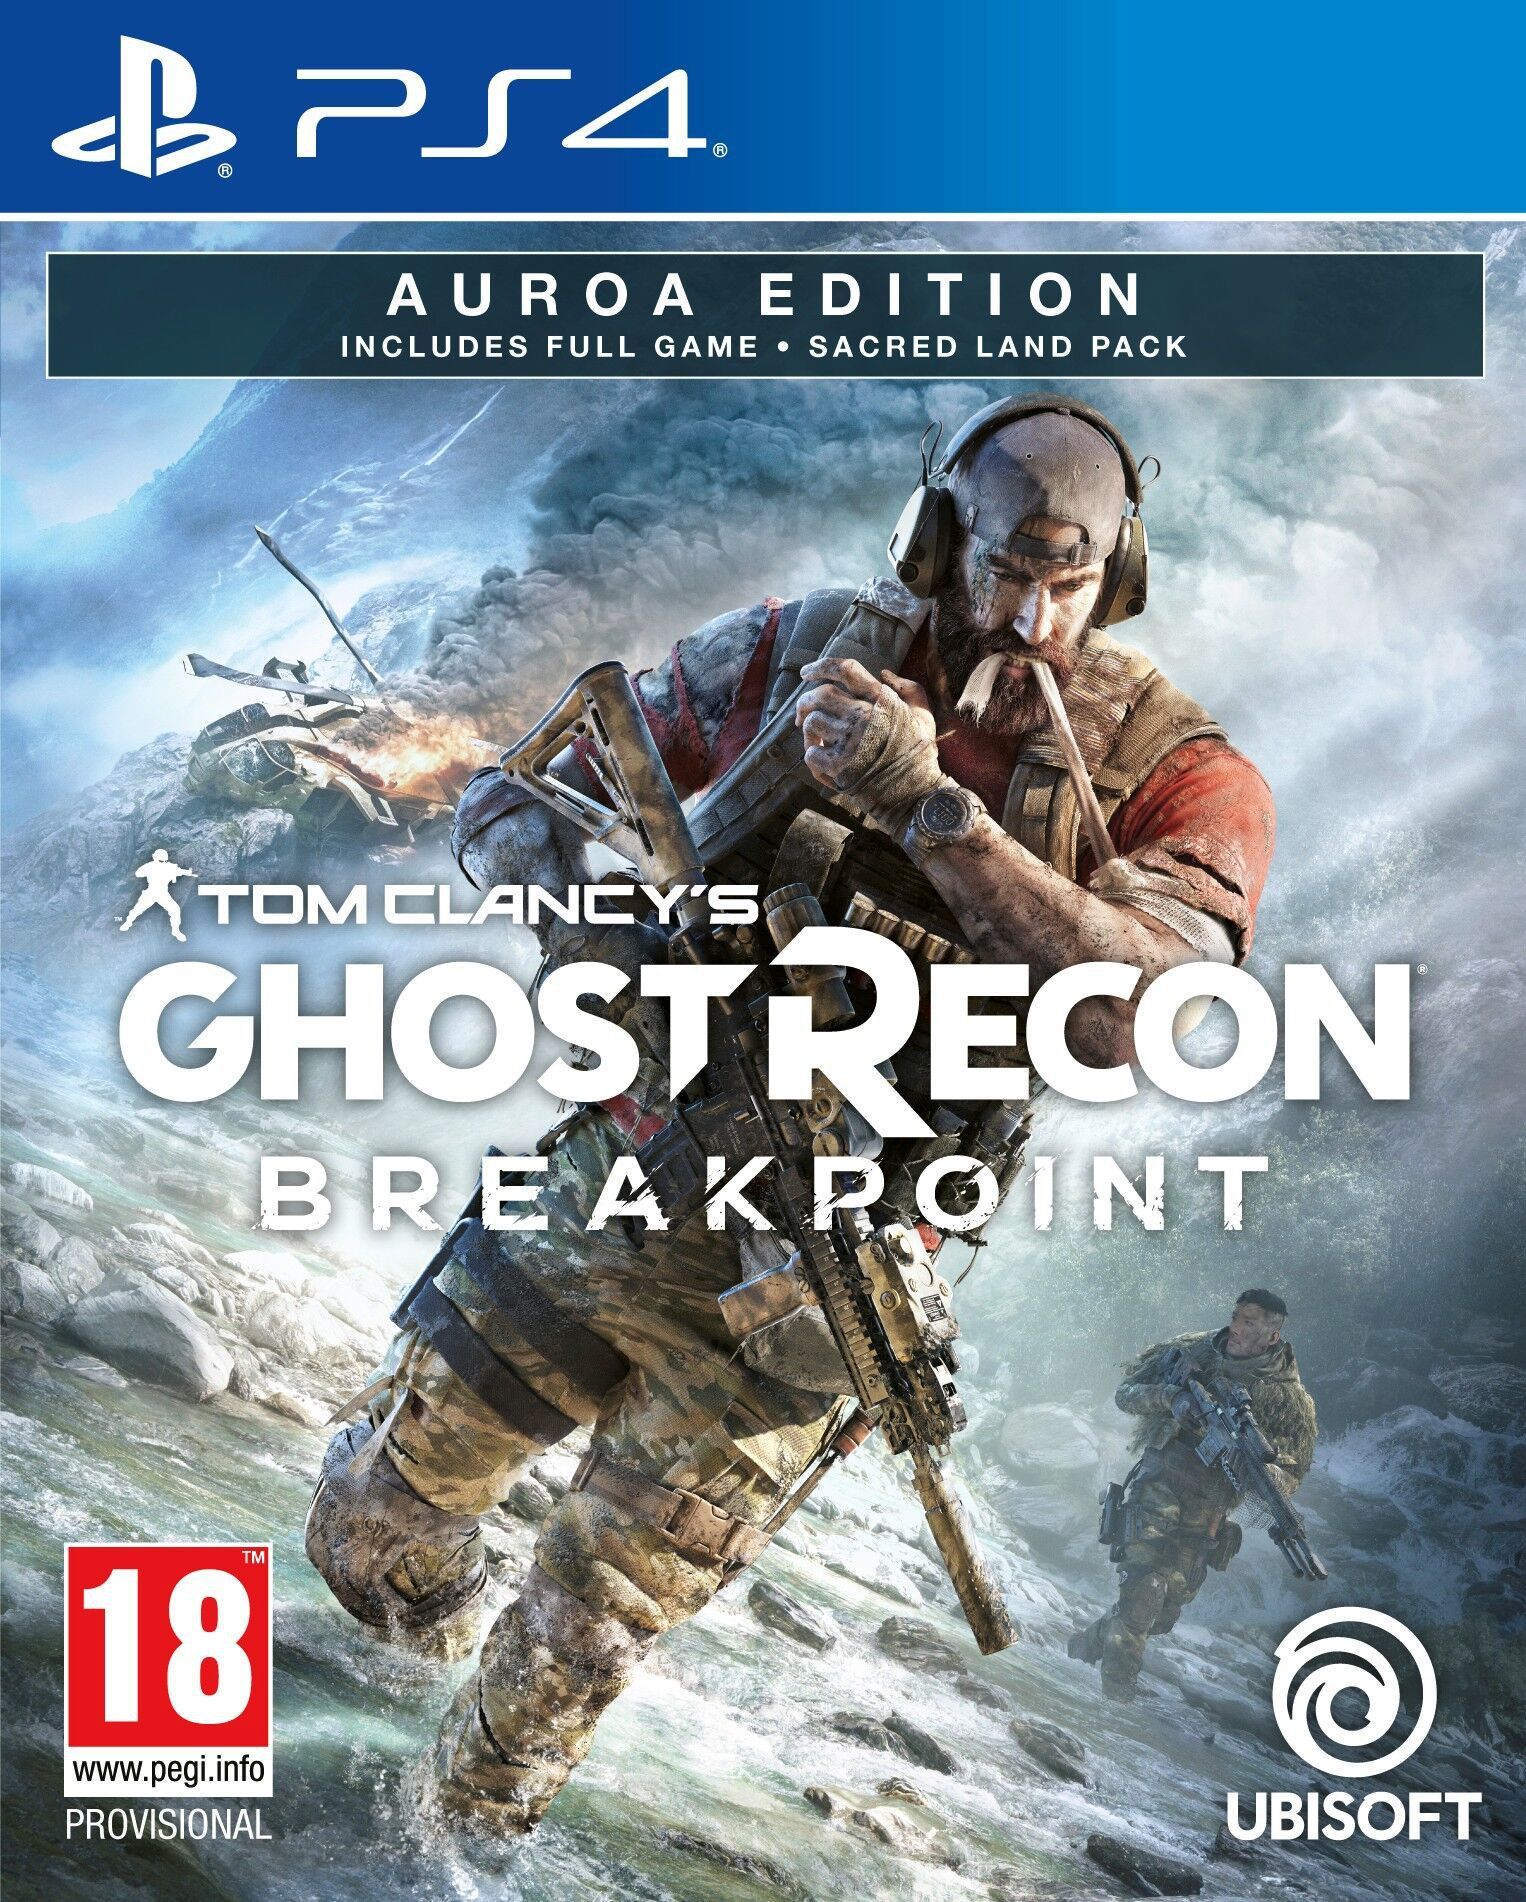 Tom Clancy's Ghost Recon: Breakpoint - Auroa Edition (PS4)